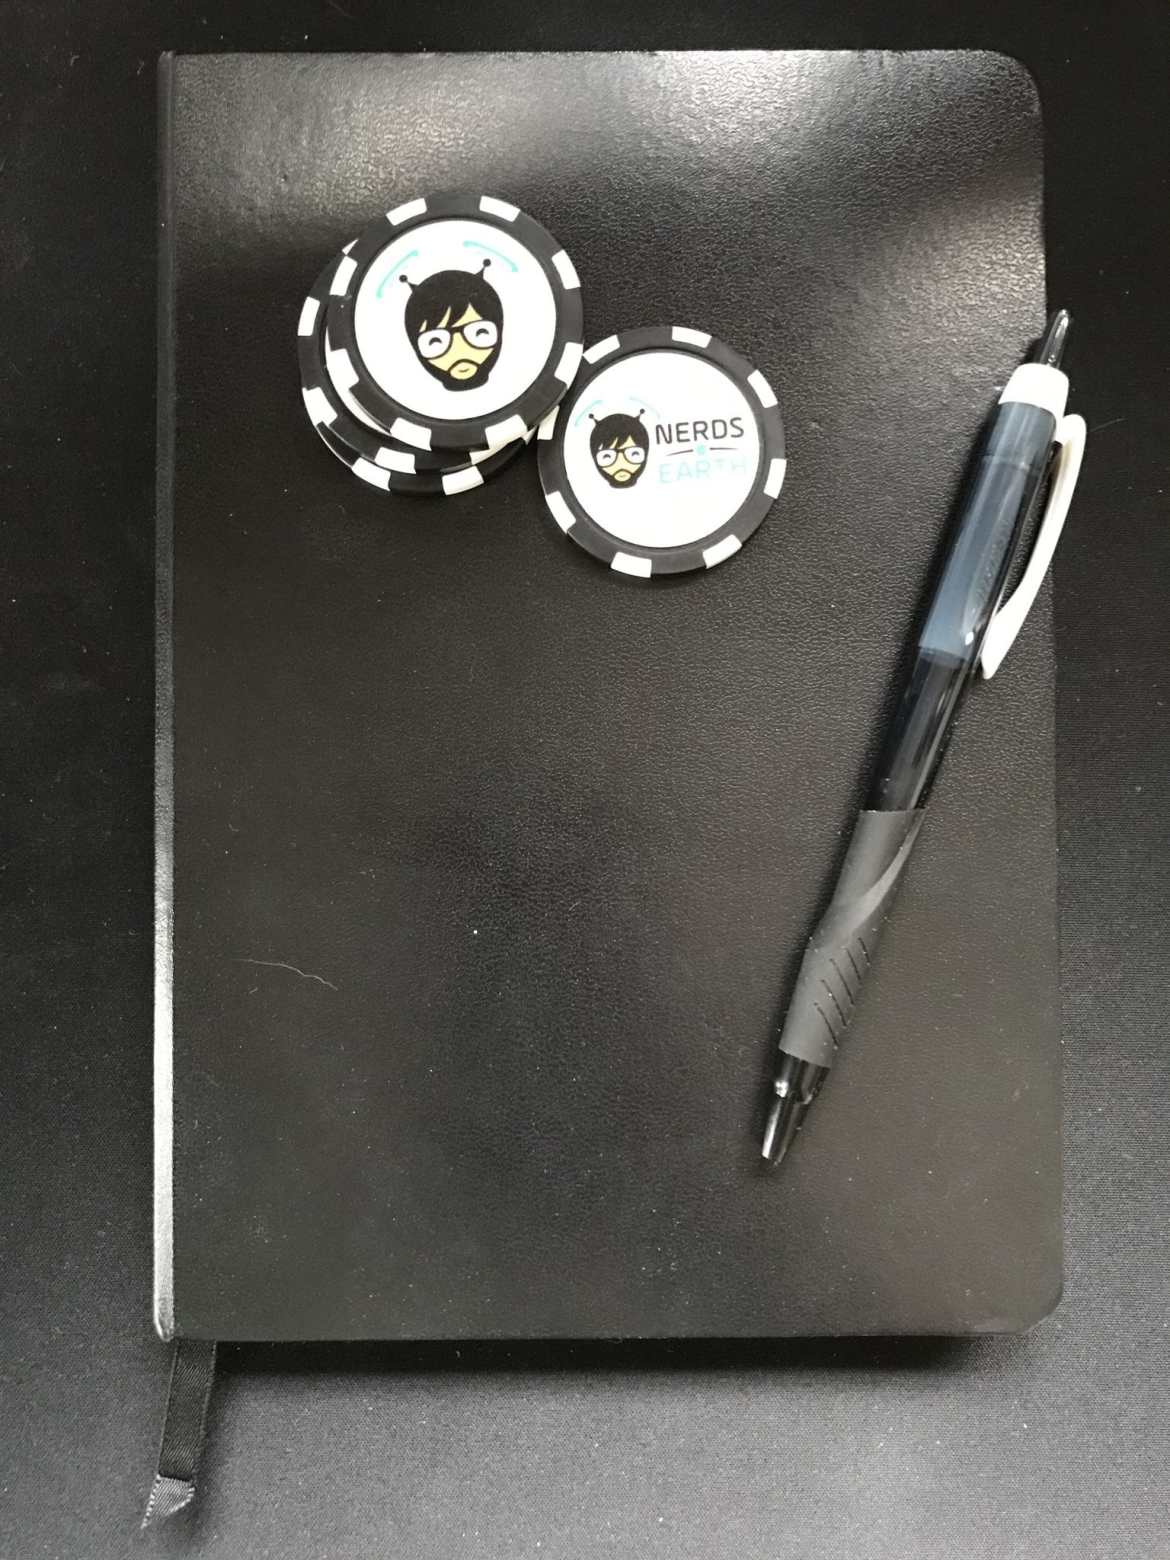 Abram's journal of game design, a little black book, complete with pen and Nerds on Earth poker chips.